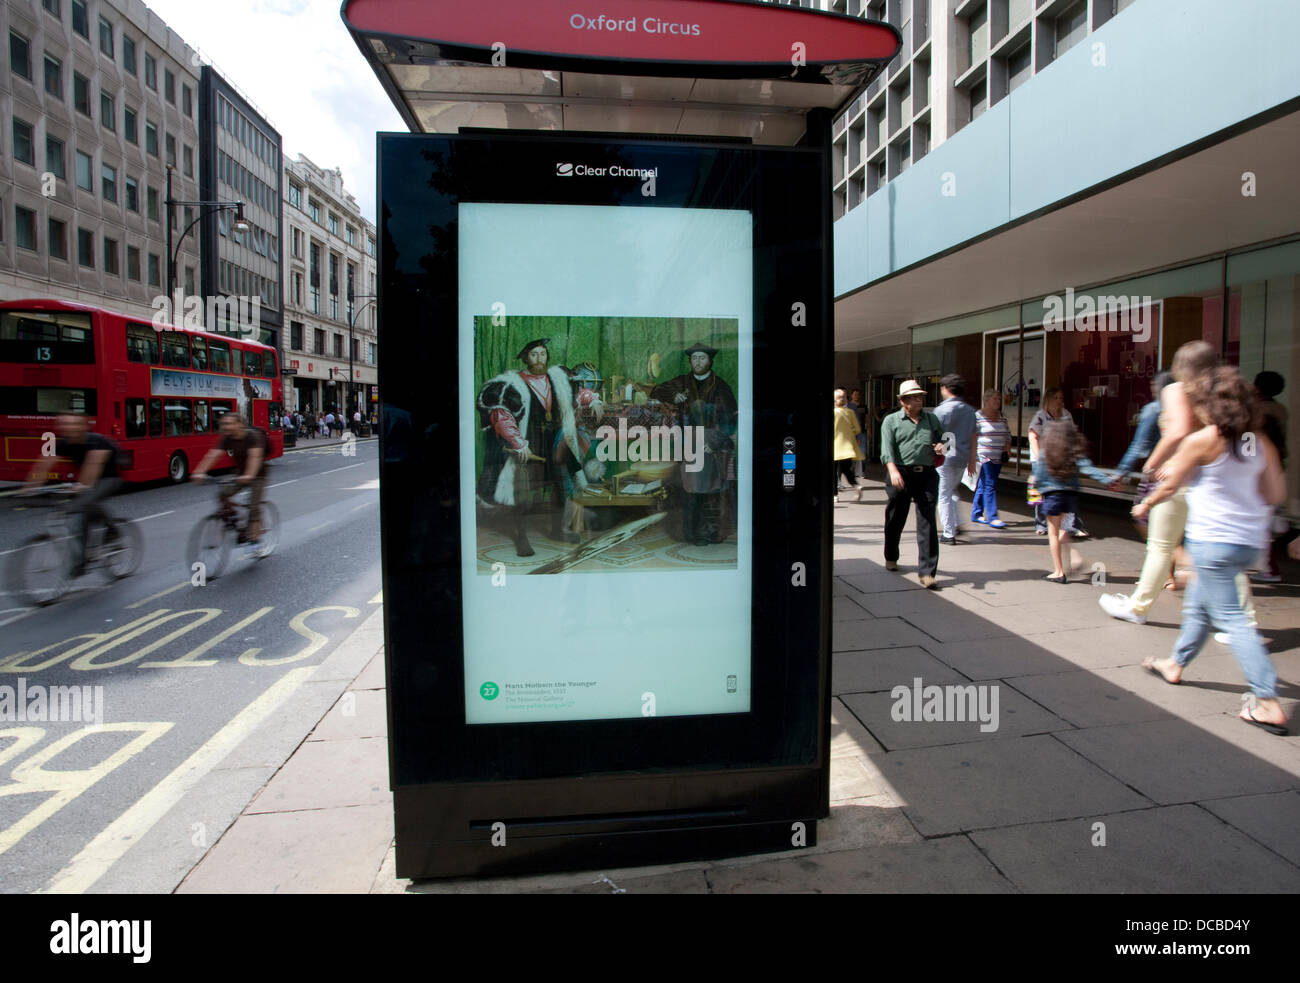 London 14/08/13: Visitors to the John Lewis section of Oxford Street can enjoy a free fine art slide show courtesy - Stock Image